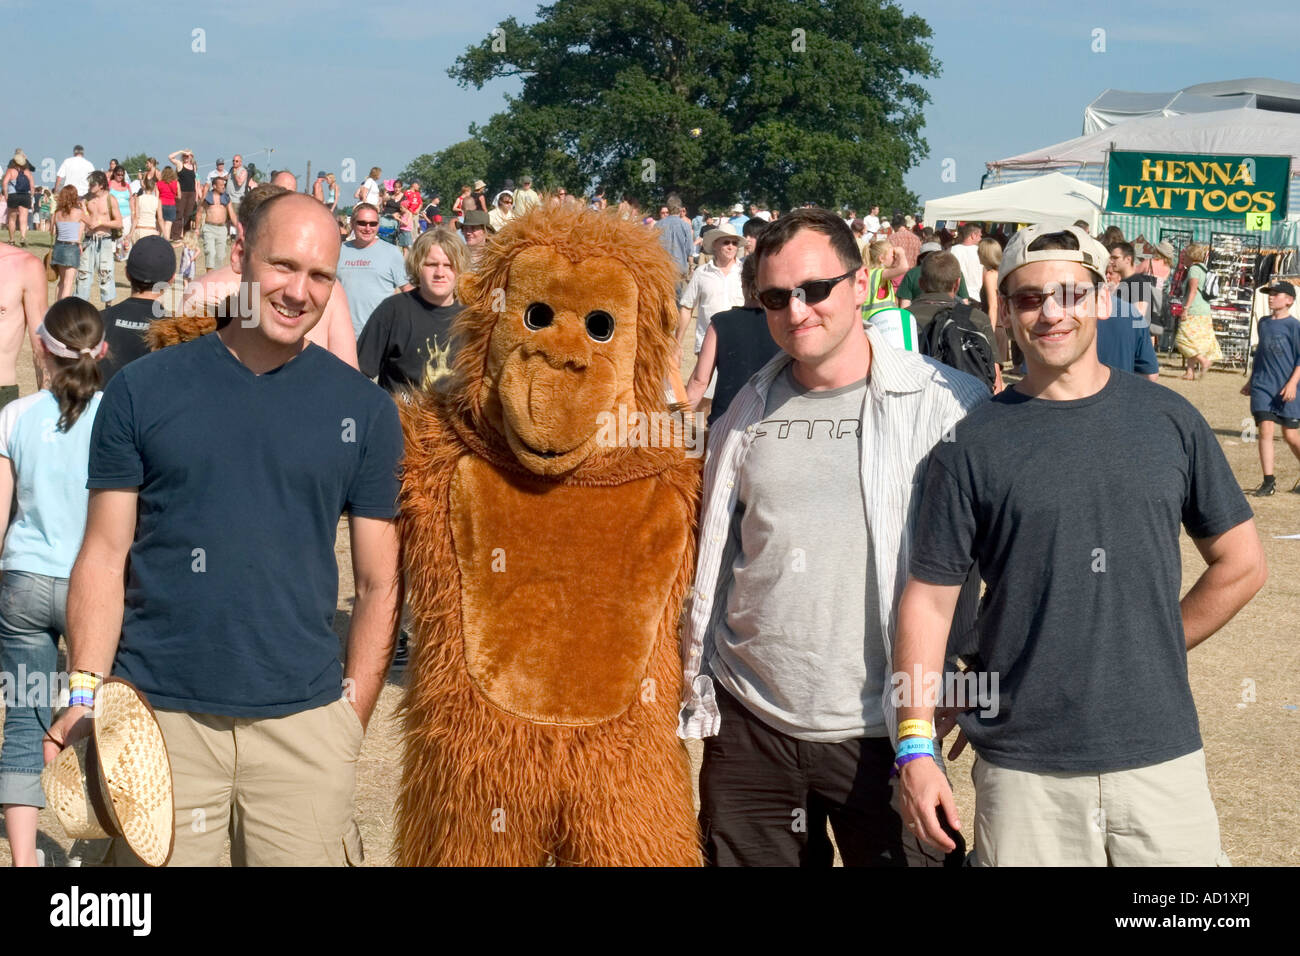 Men with man in monkey suit at Guilfest music festival ...